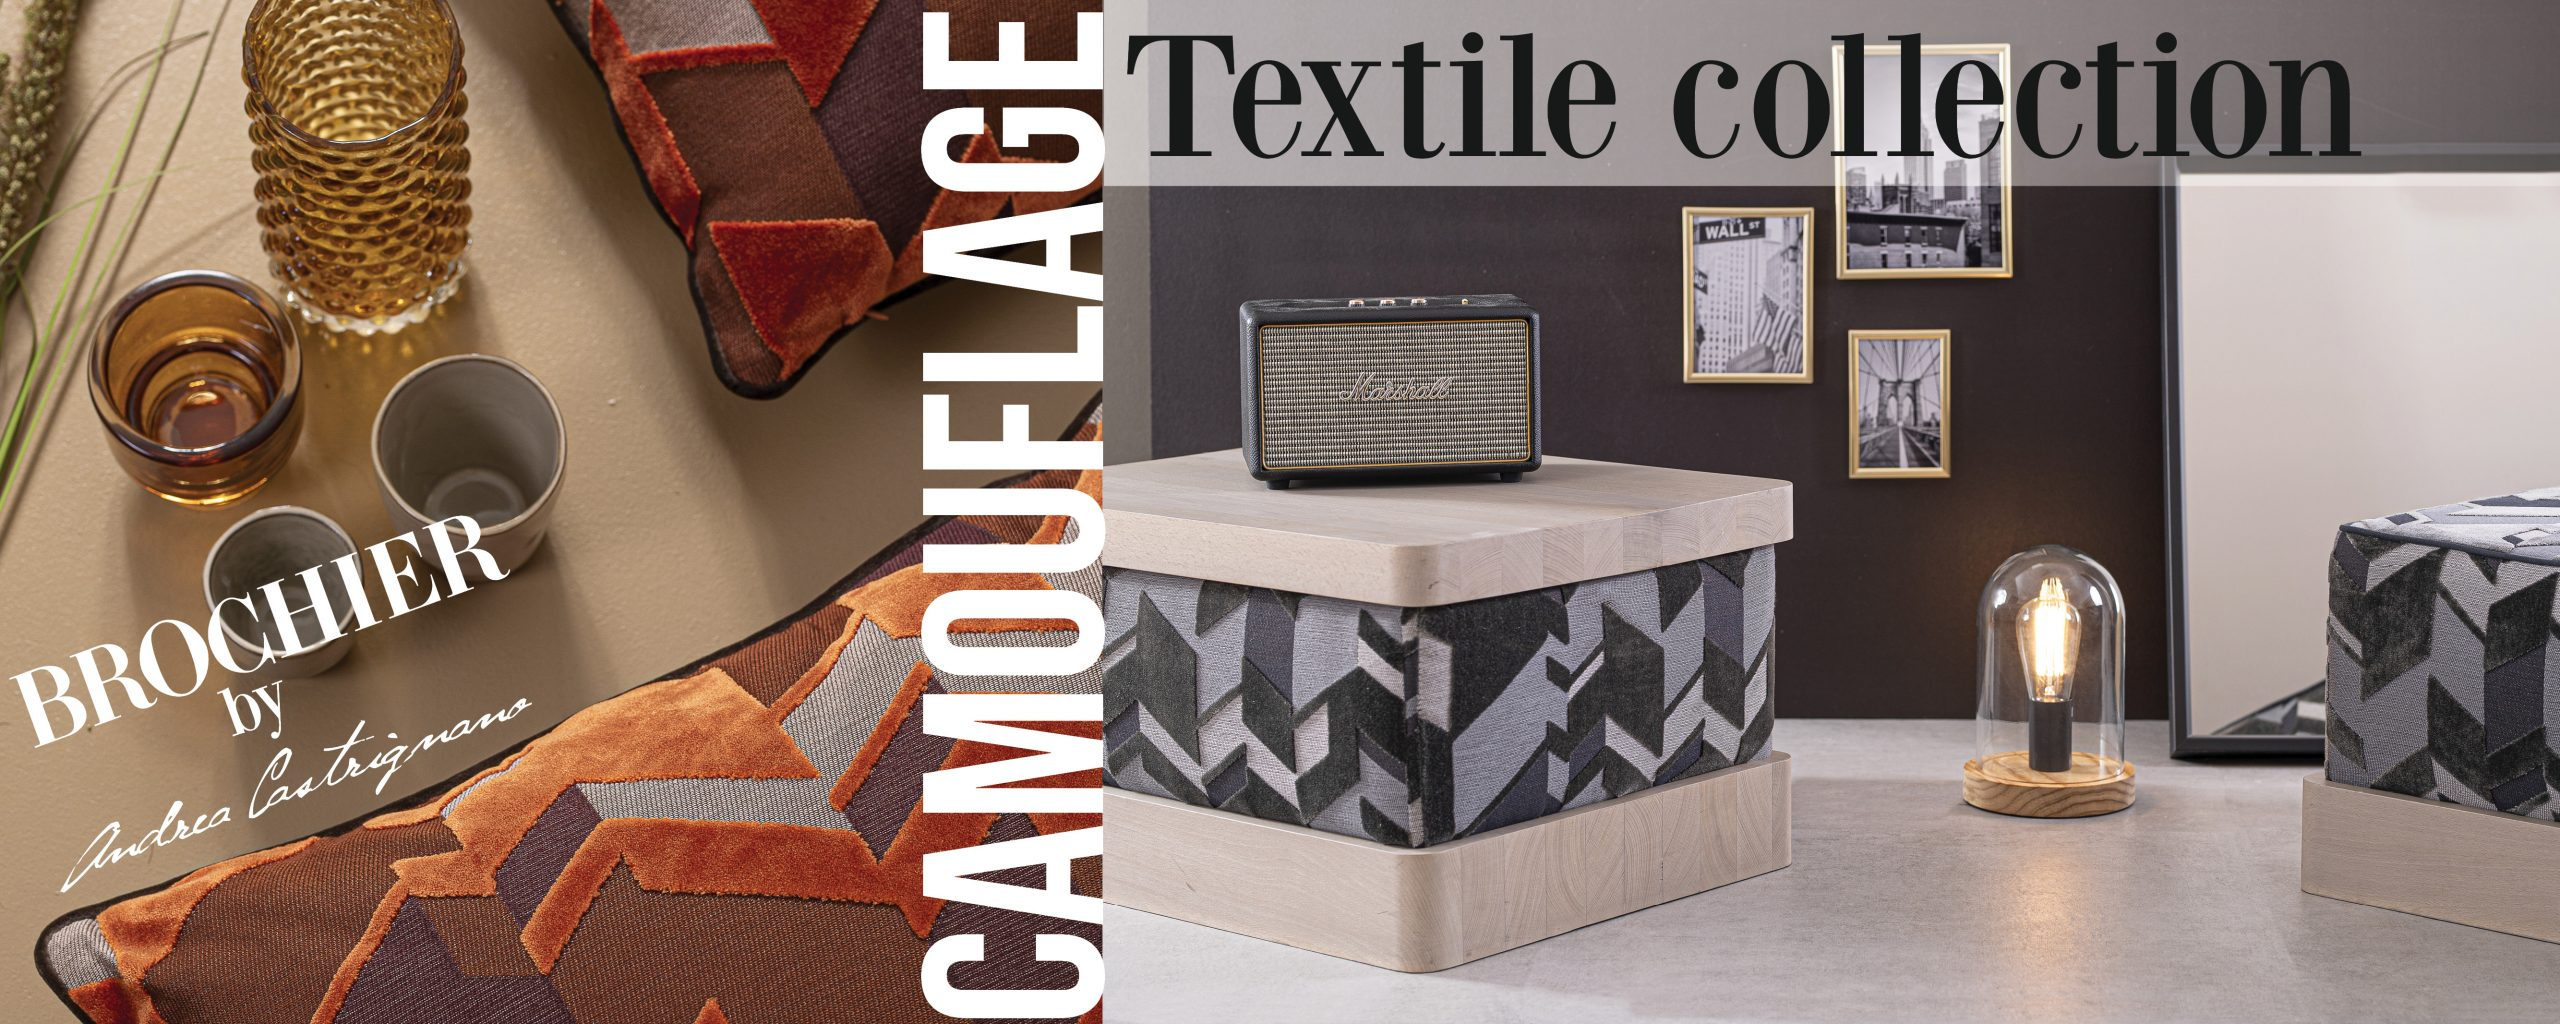 Camouflage Textile Collection by Andrea Castrignano per Brochier_Img